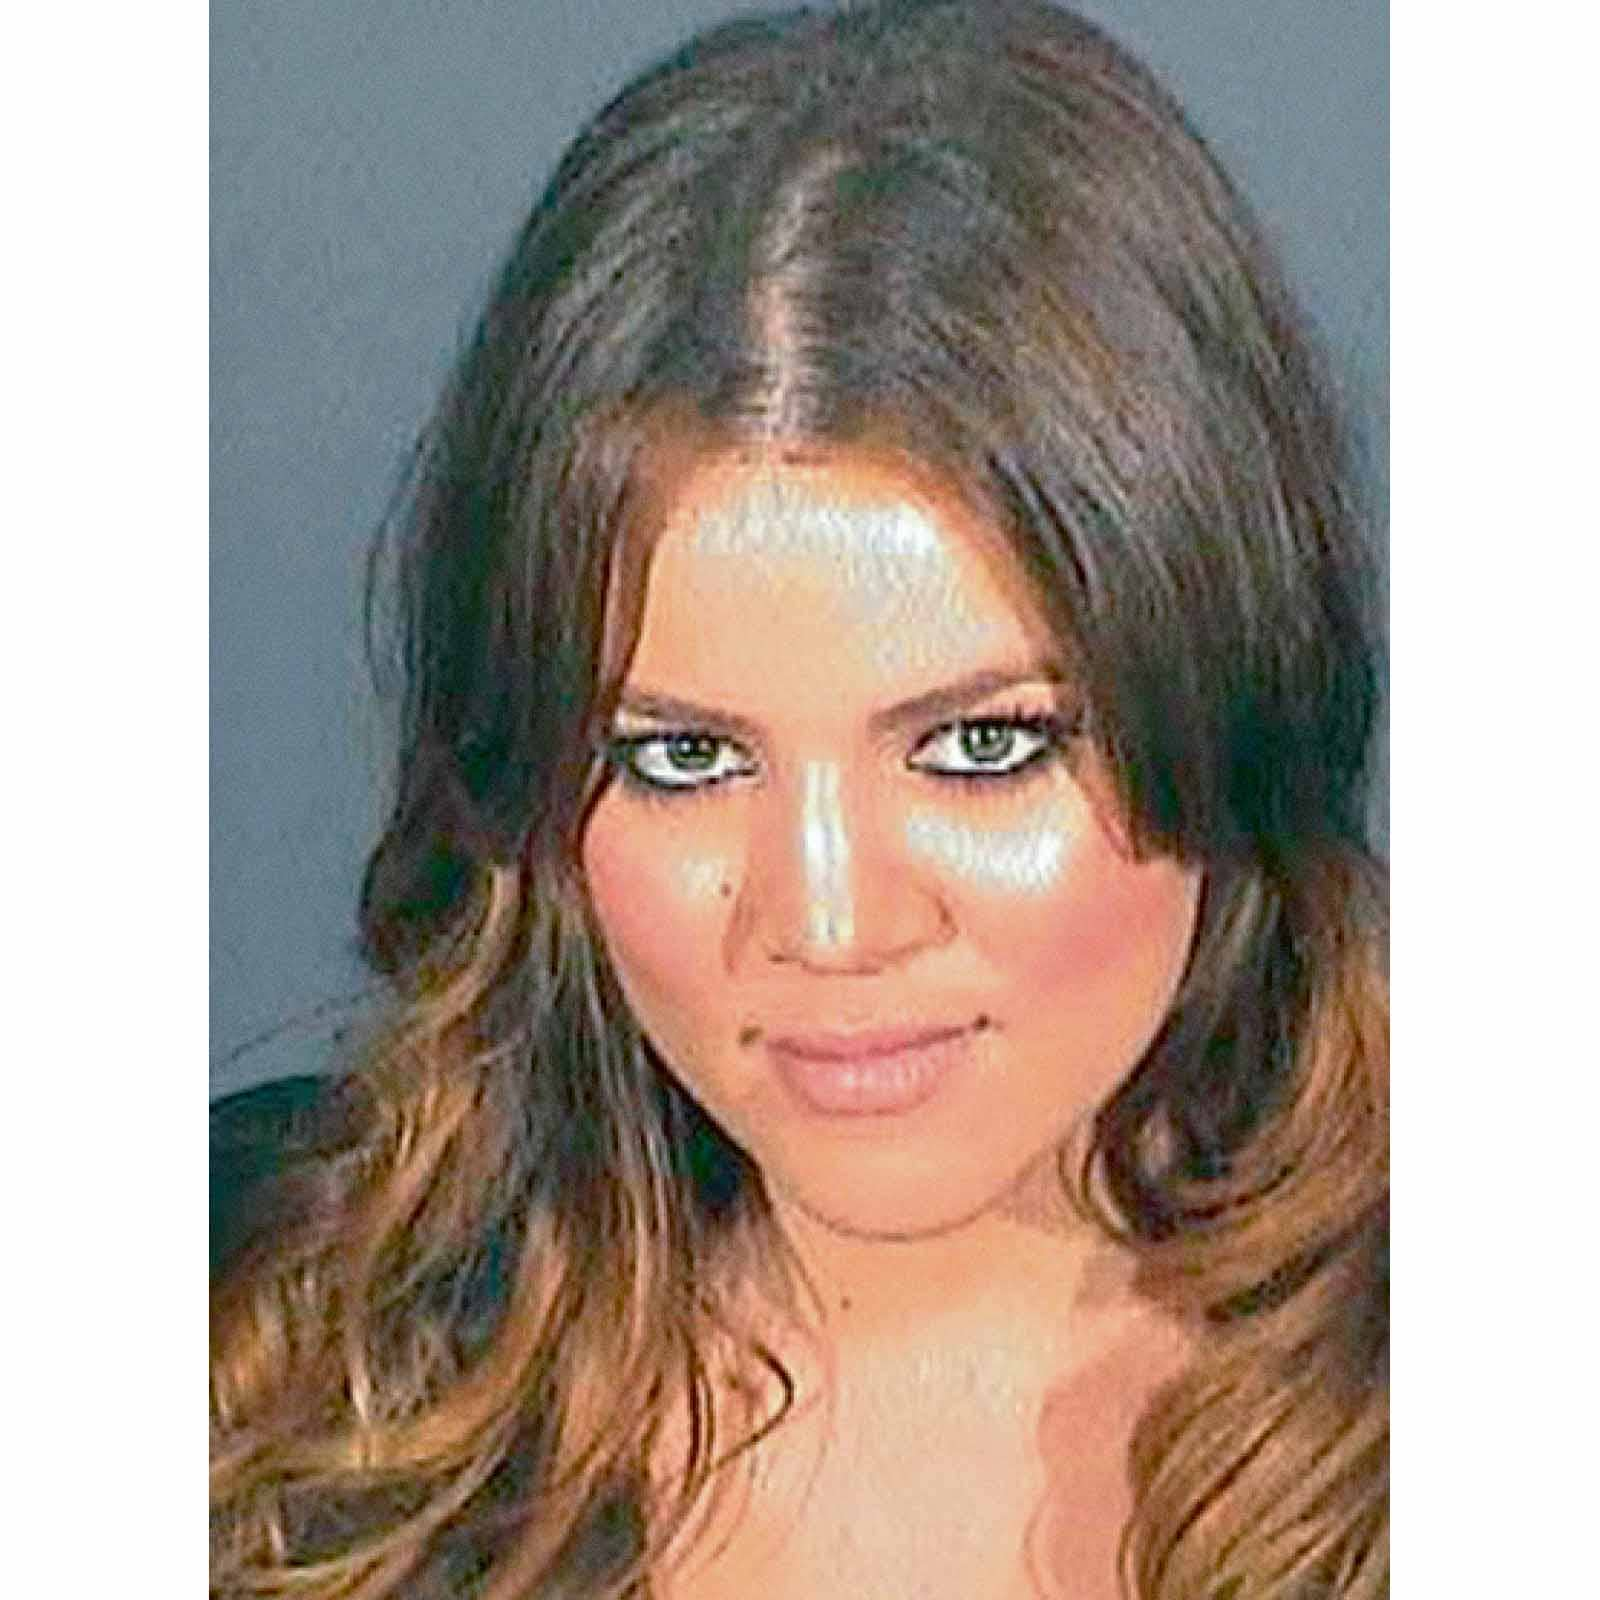 Khloé Kardashian, 2008    Kardashian turned herself into  Los Angeles County jail here in 2008 for violating terms of her probation for a 2007 DUI conviction. Khloé did not complete the alcohol education program or the community service that she promised to under her probation terms. Khloé was supposed to serve up to 30 days in jail, but was released just 30 hours later due to overcrowding.